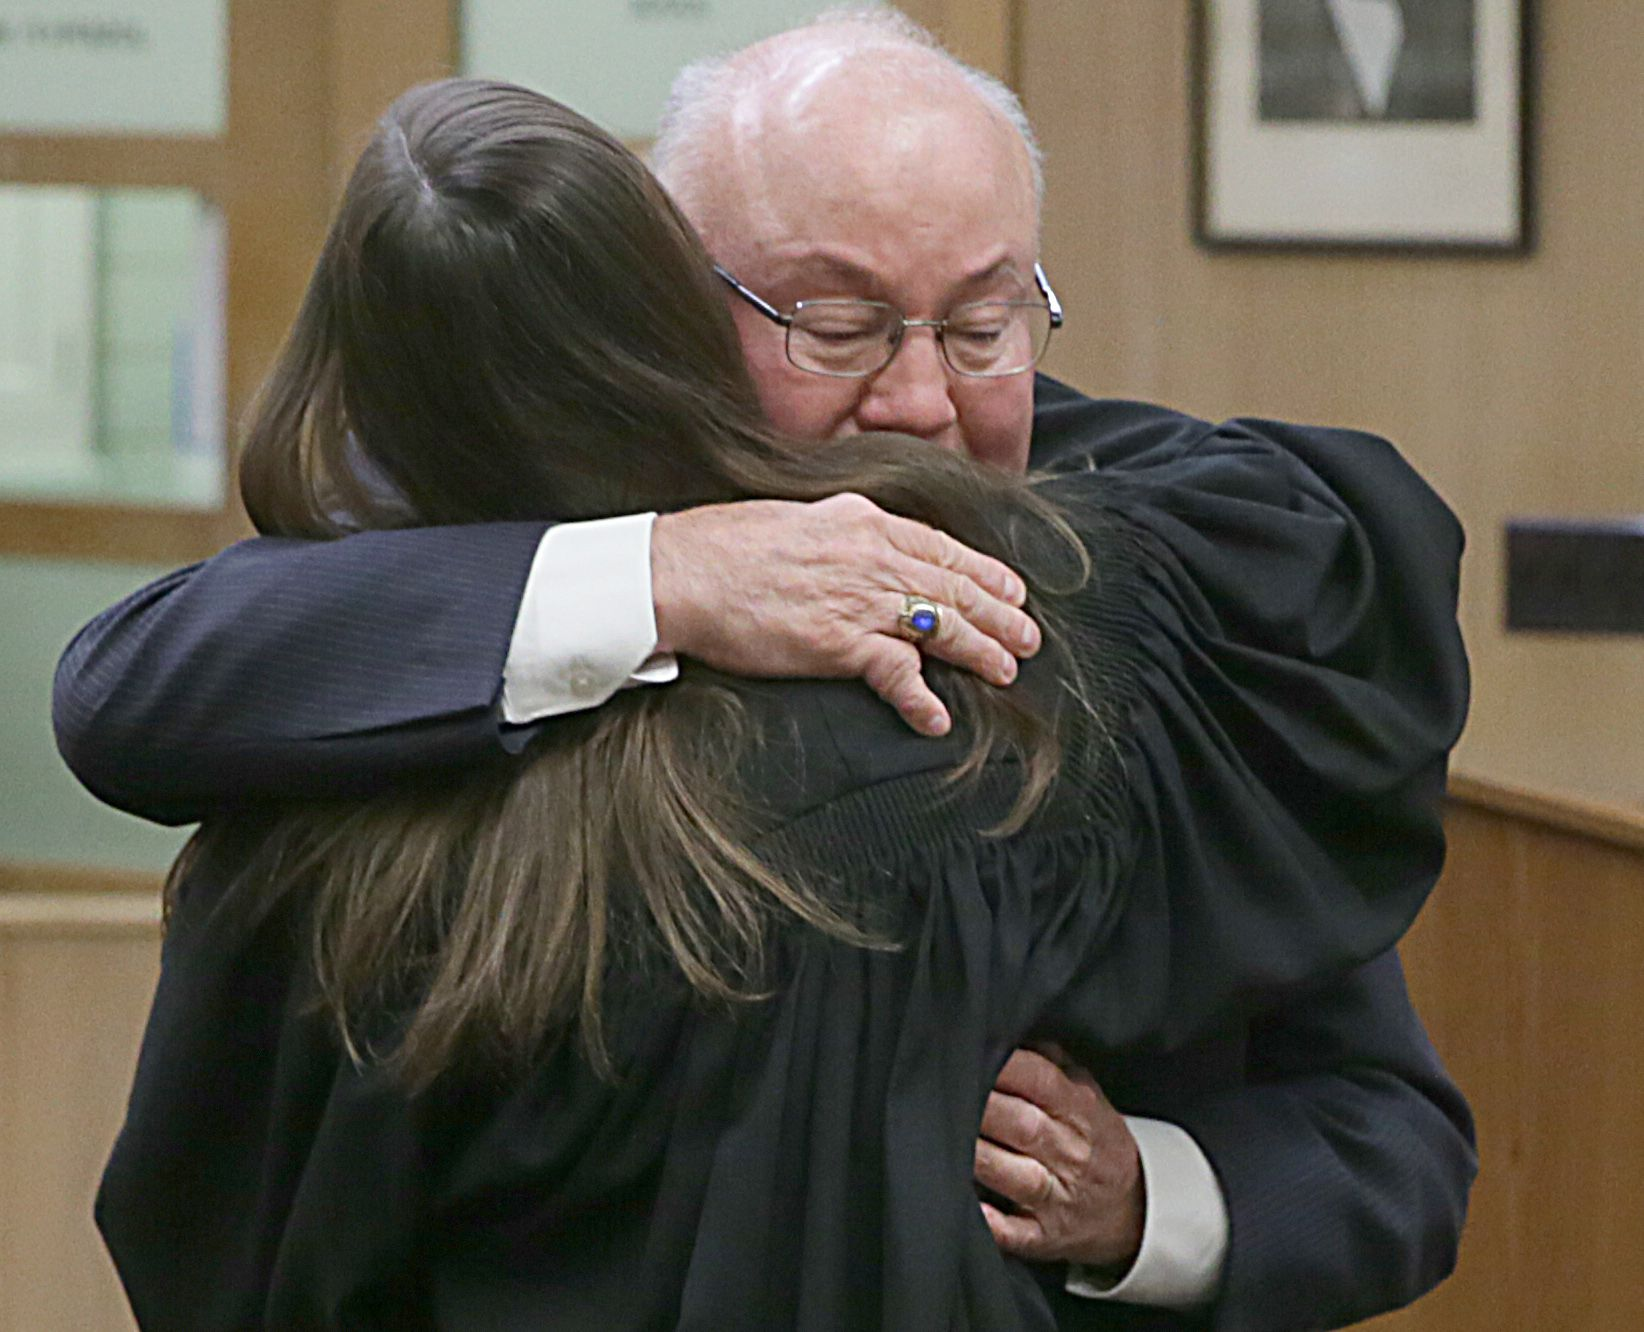 Attorney John Cantlin hugs his daughter Christina Cantlin-Van Winggeren after Van Winggeren was sworn in at the La Salle County Courthouse downtown Ottawa on March 22, 2021.